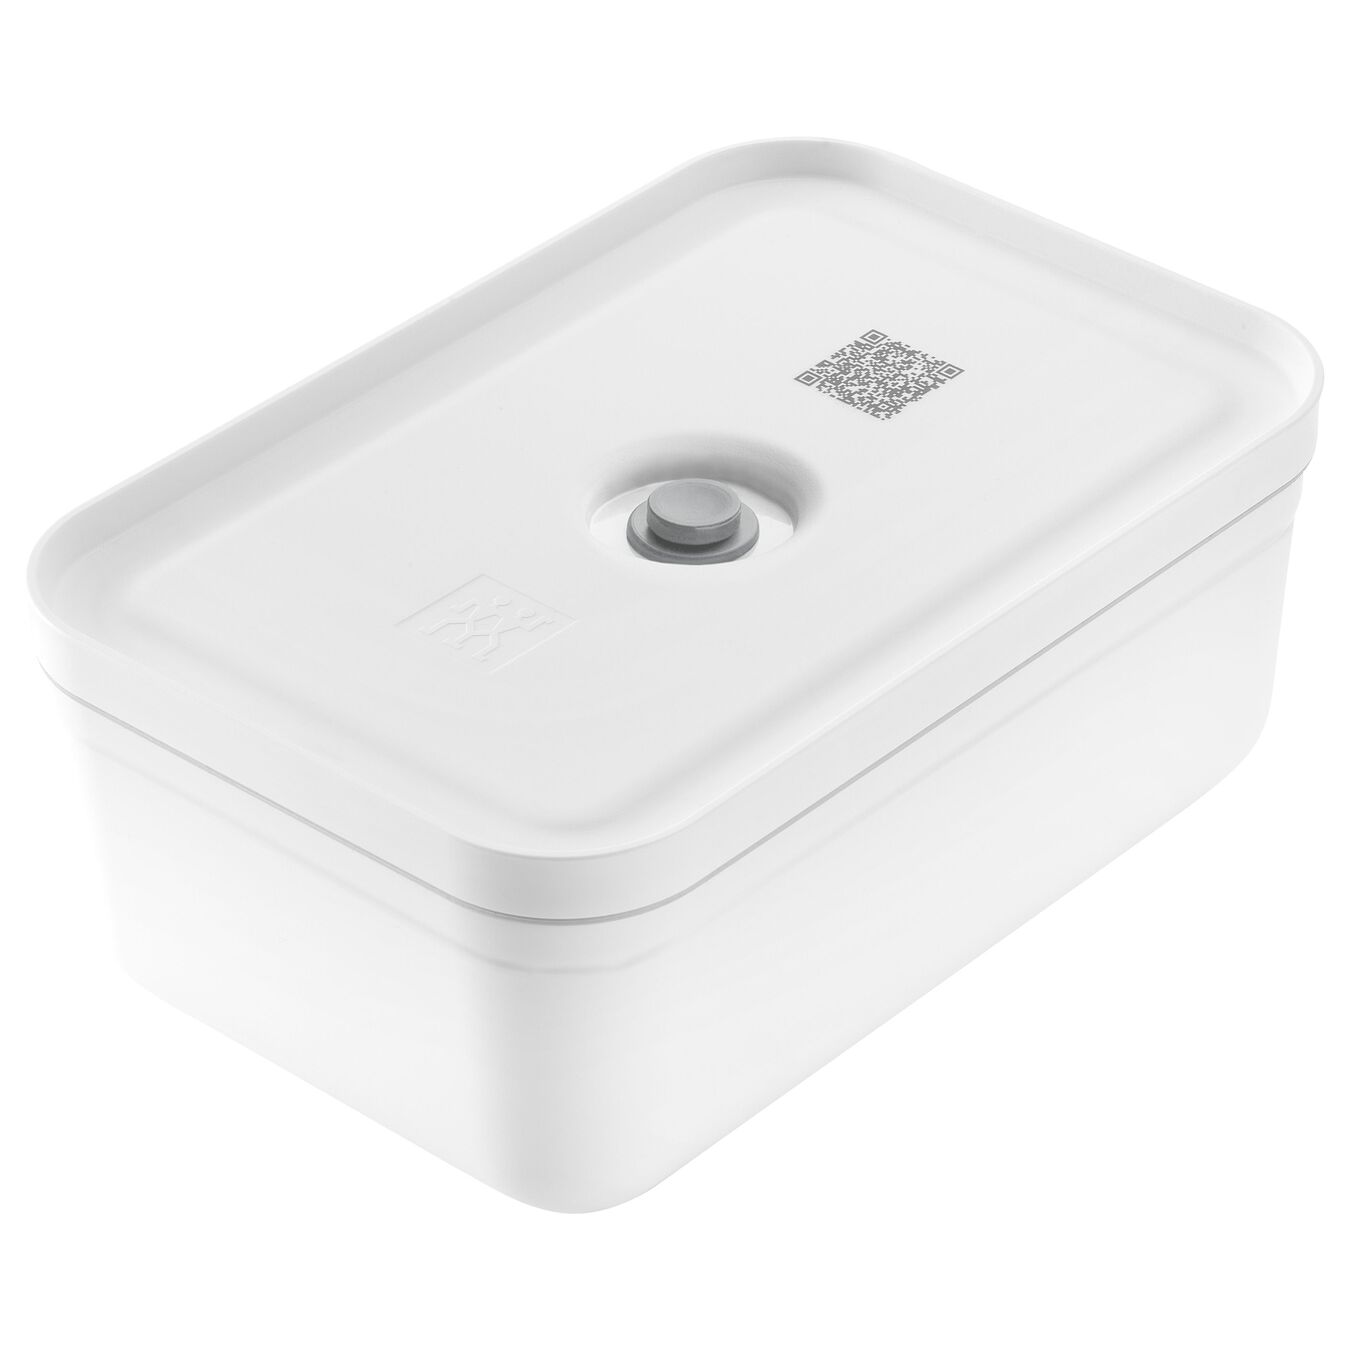 Contenitore Lunch Box Plastica Fresh & Save Enfinigy